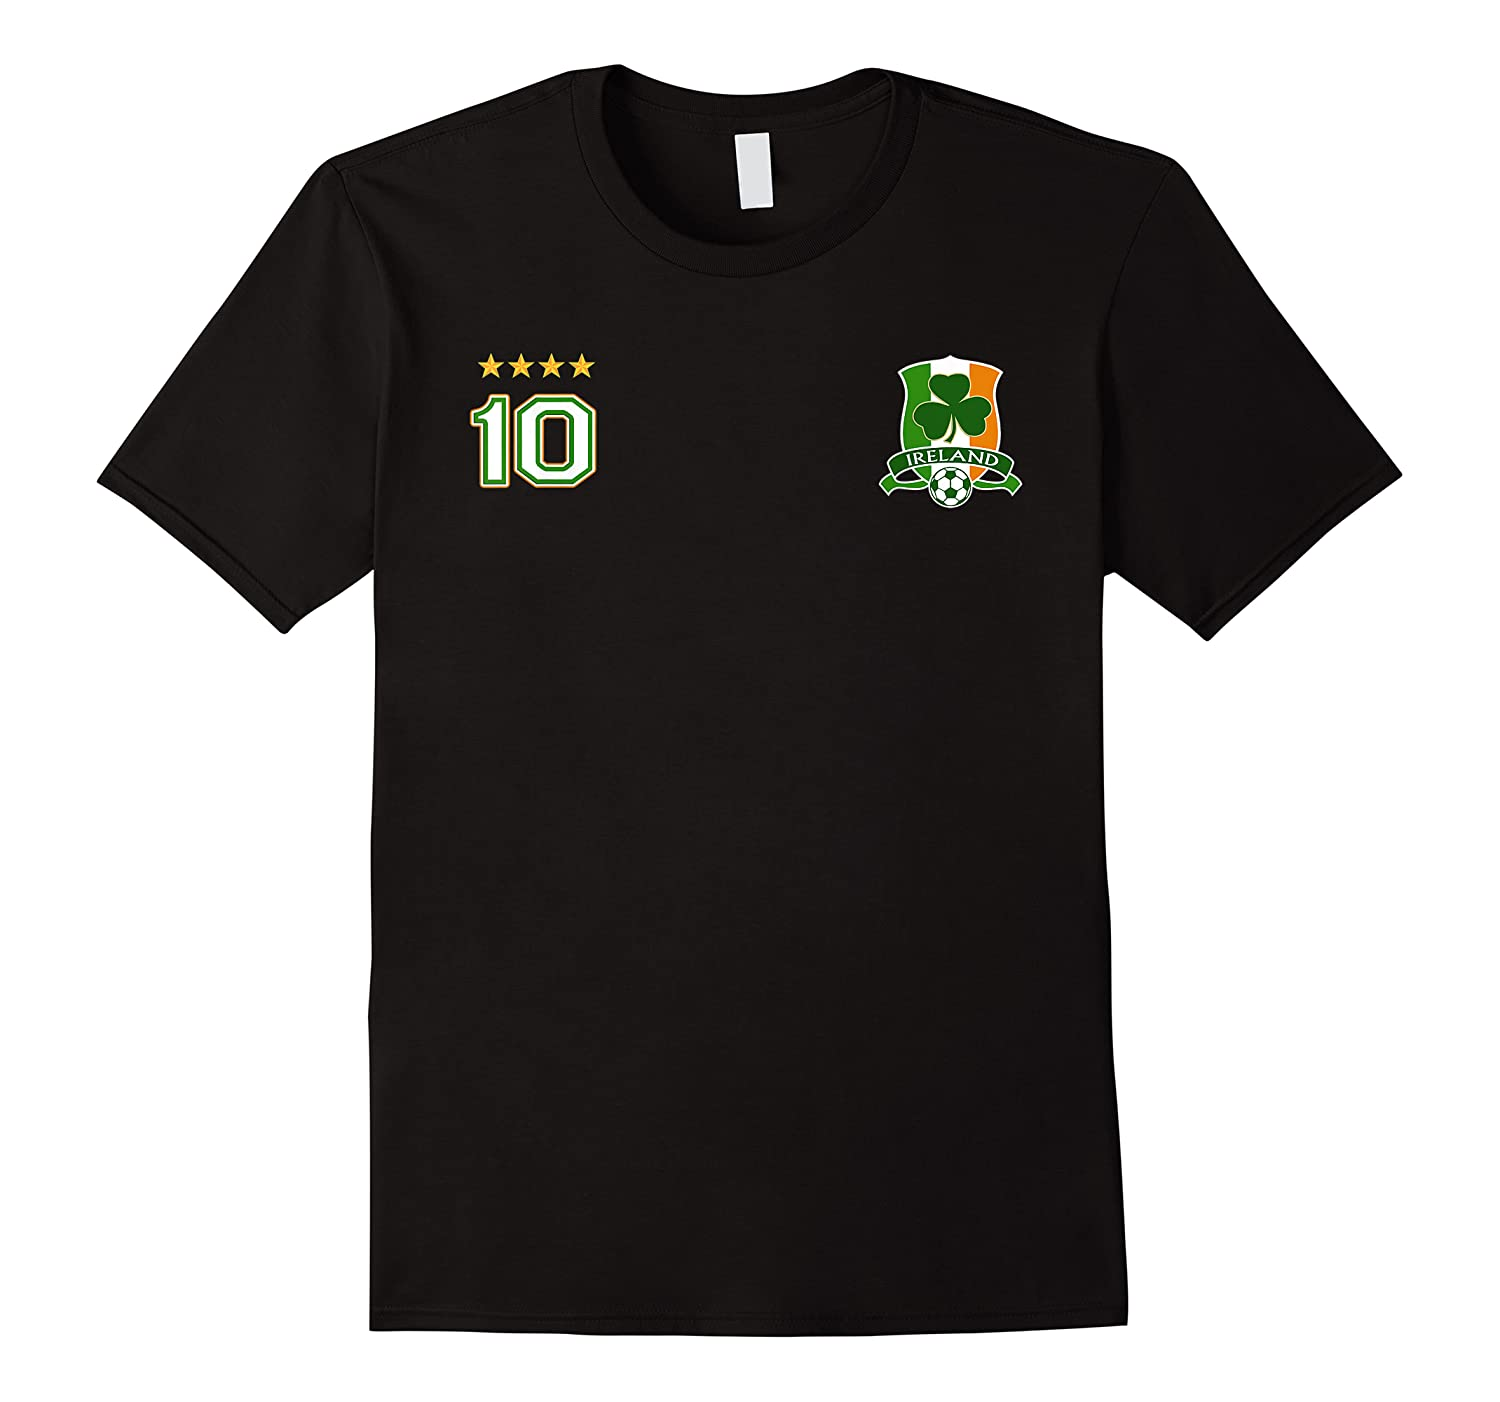 Ireland Soccer Design With Irish Shield And Number 10 Shirts